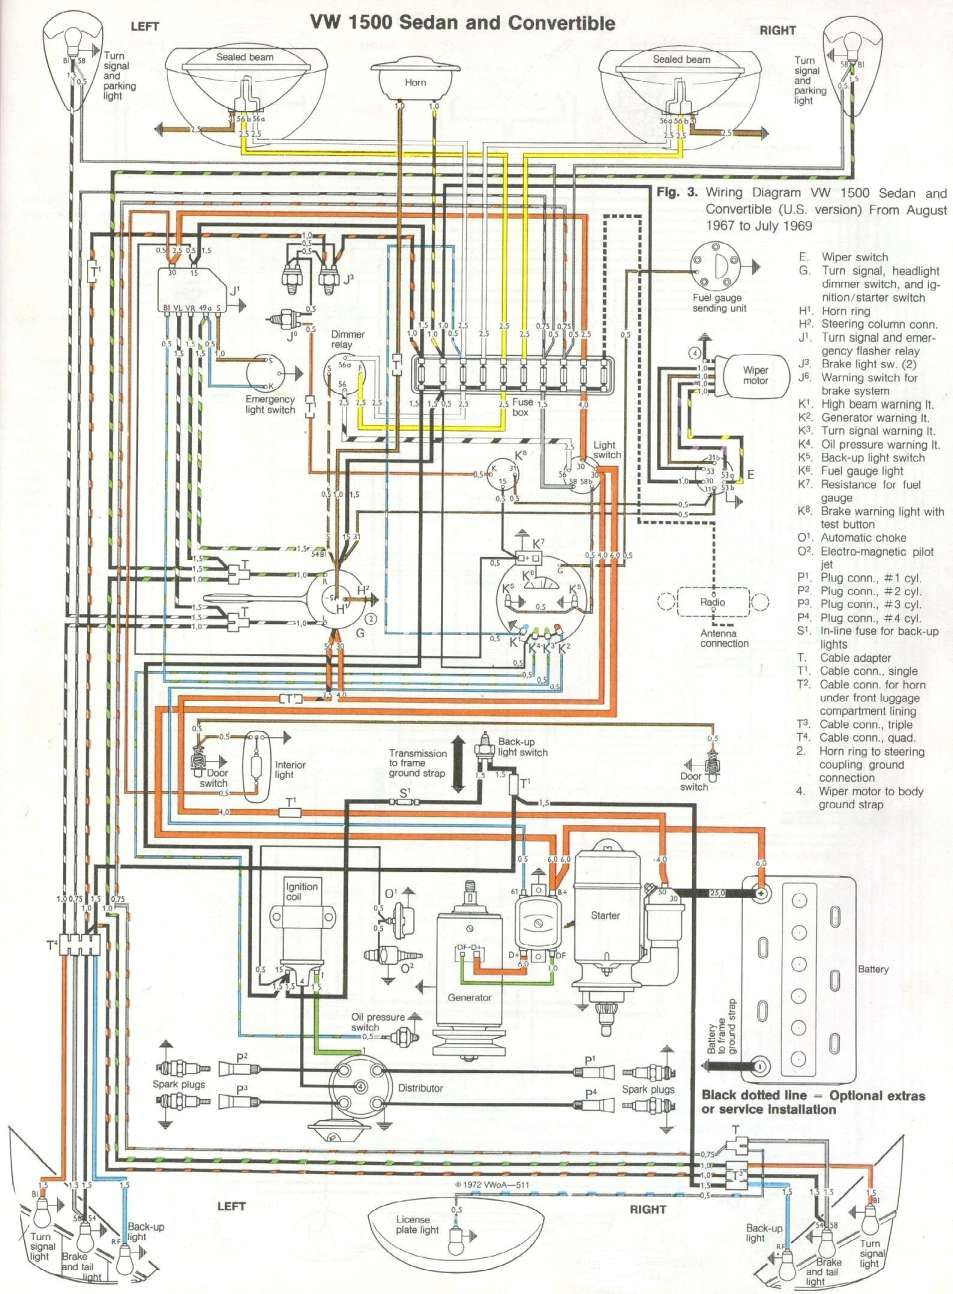 17 Vw Beetle Engine Wiring Diagram Engine Diagram Wiringg Net Vw Super Beetle Vw Beetles Vw Engine